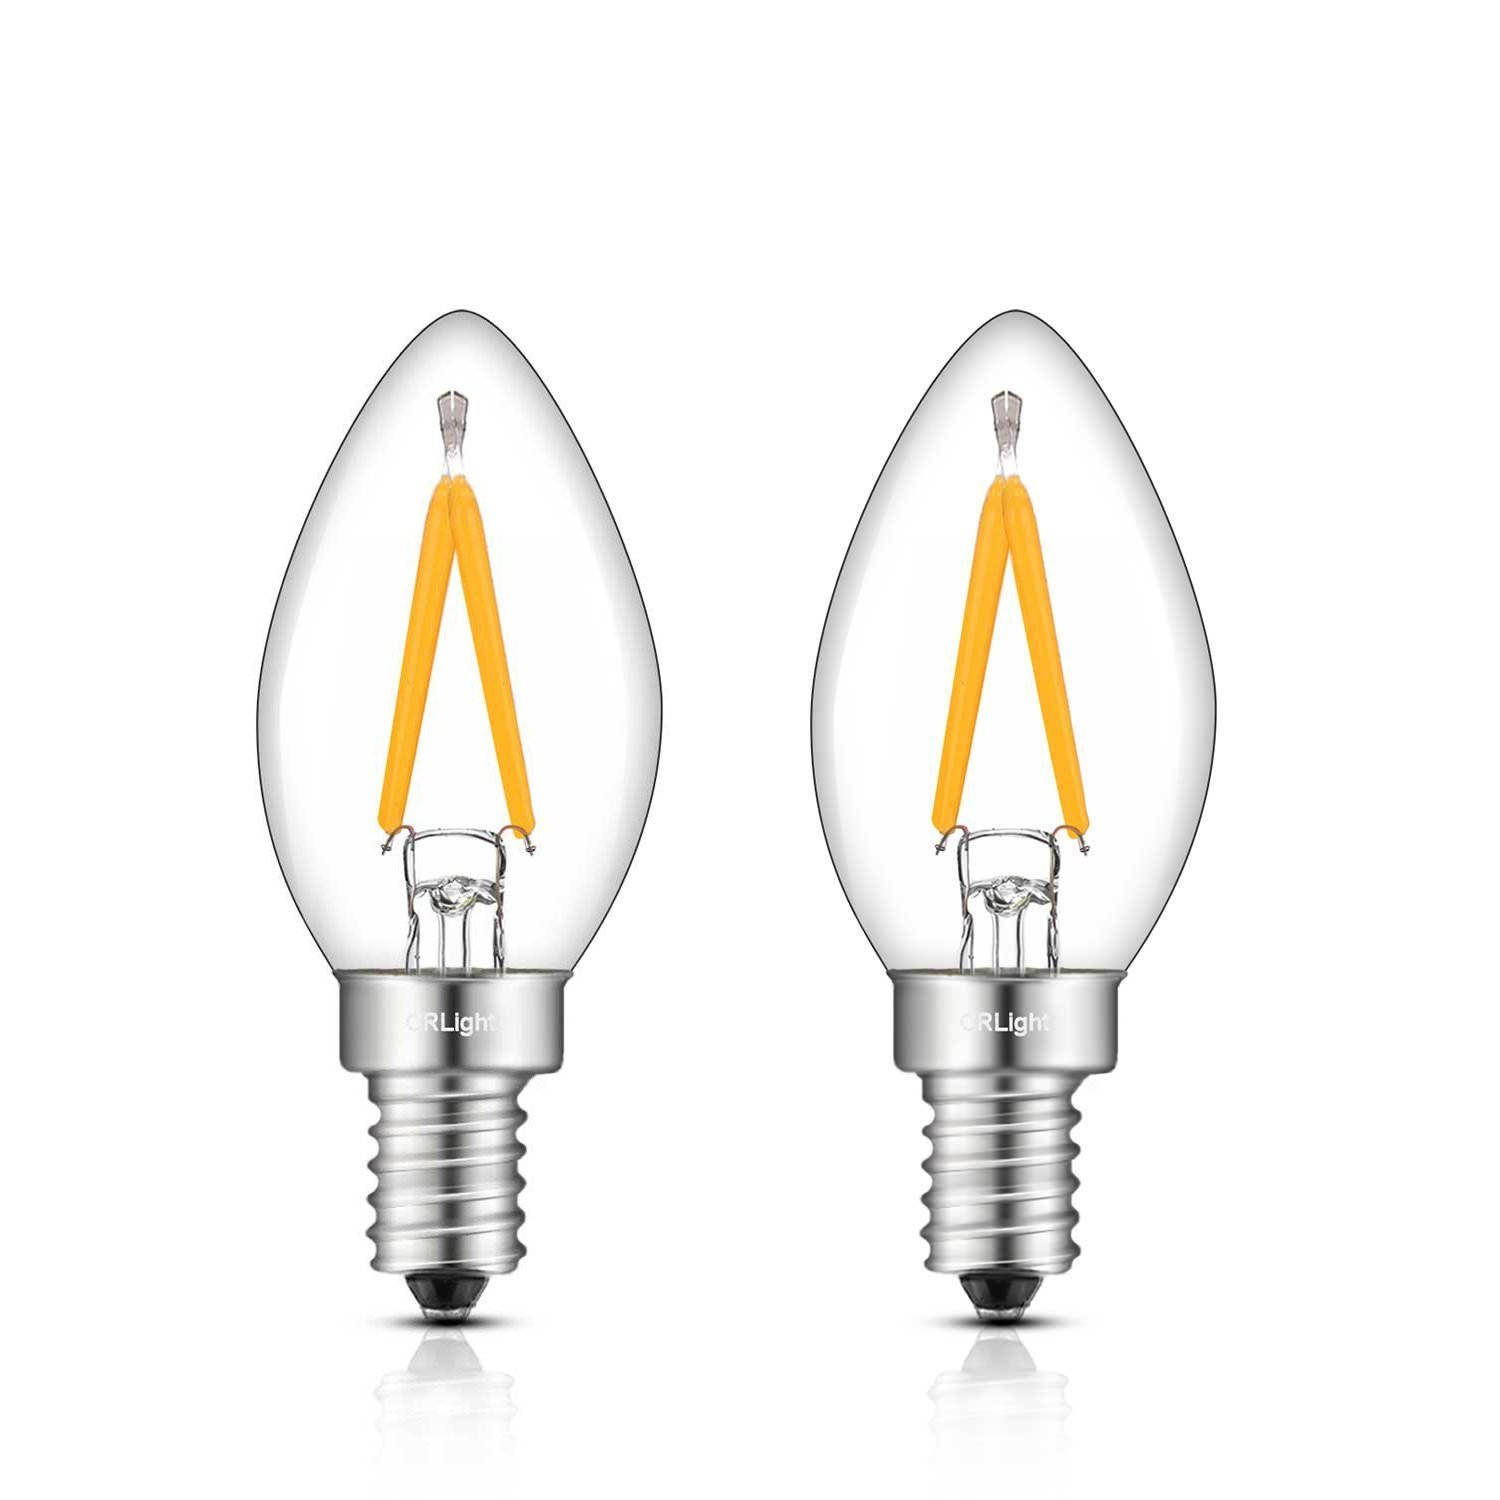 1W C7 LED E12 Dimmable light bulbs